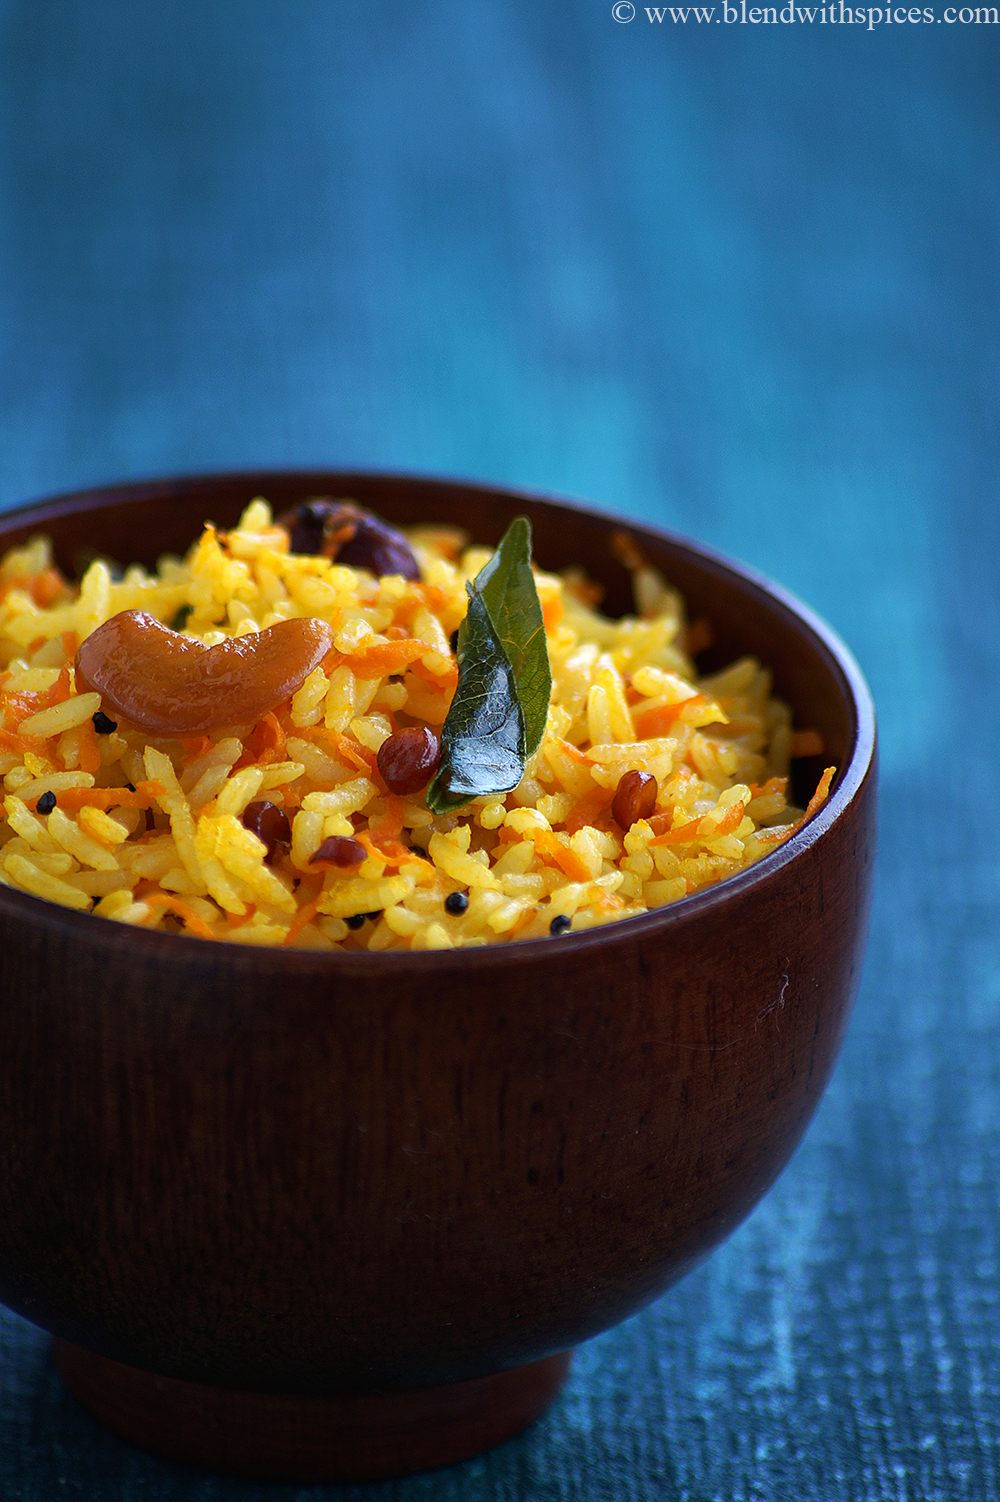 how to make carrot lemon rice recipe, healthy carrot recipes indian